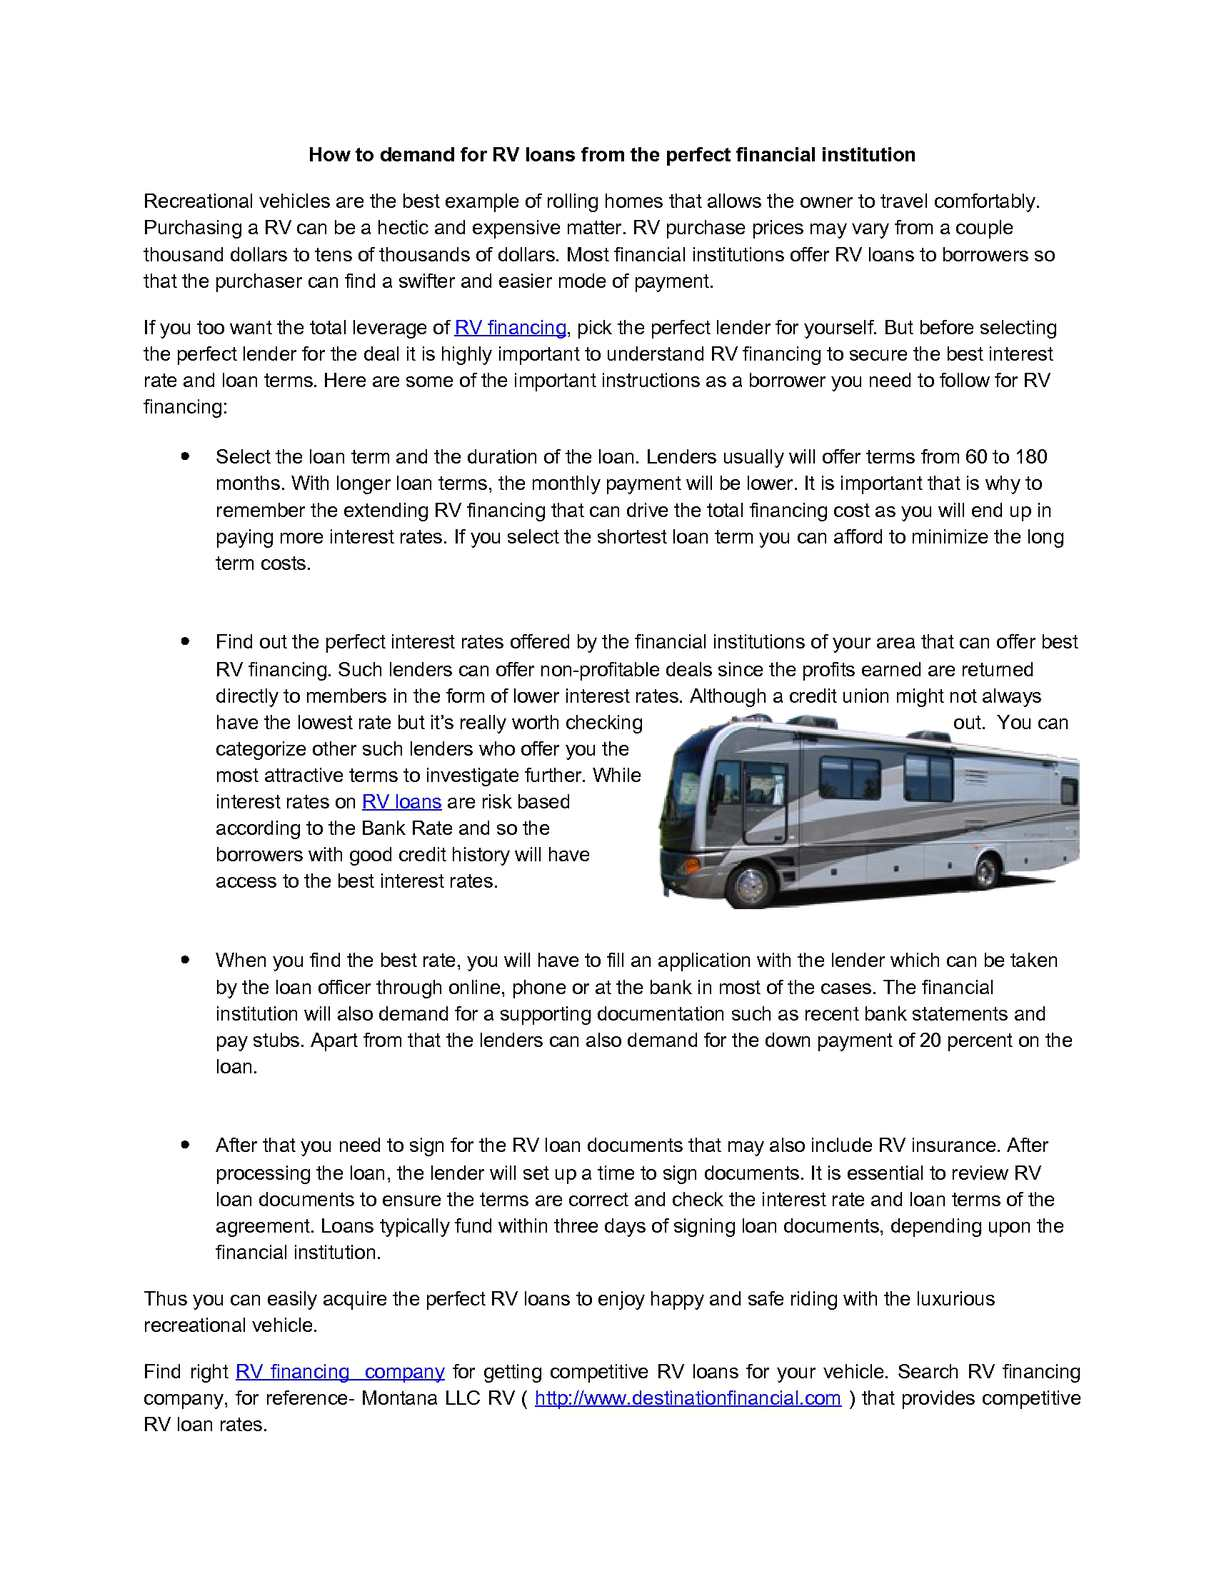 Calaméo - How to demand for RV loans from the perfect financial